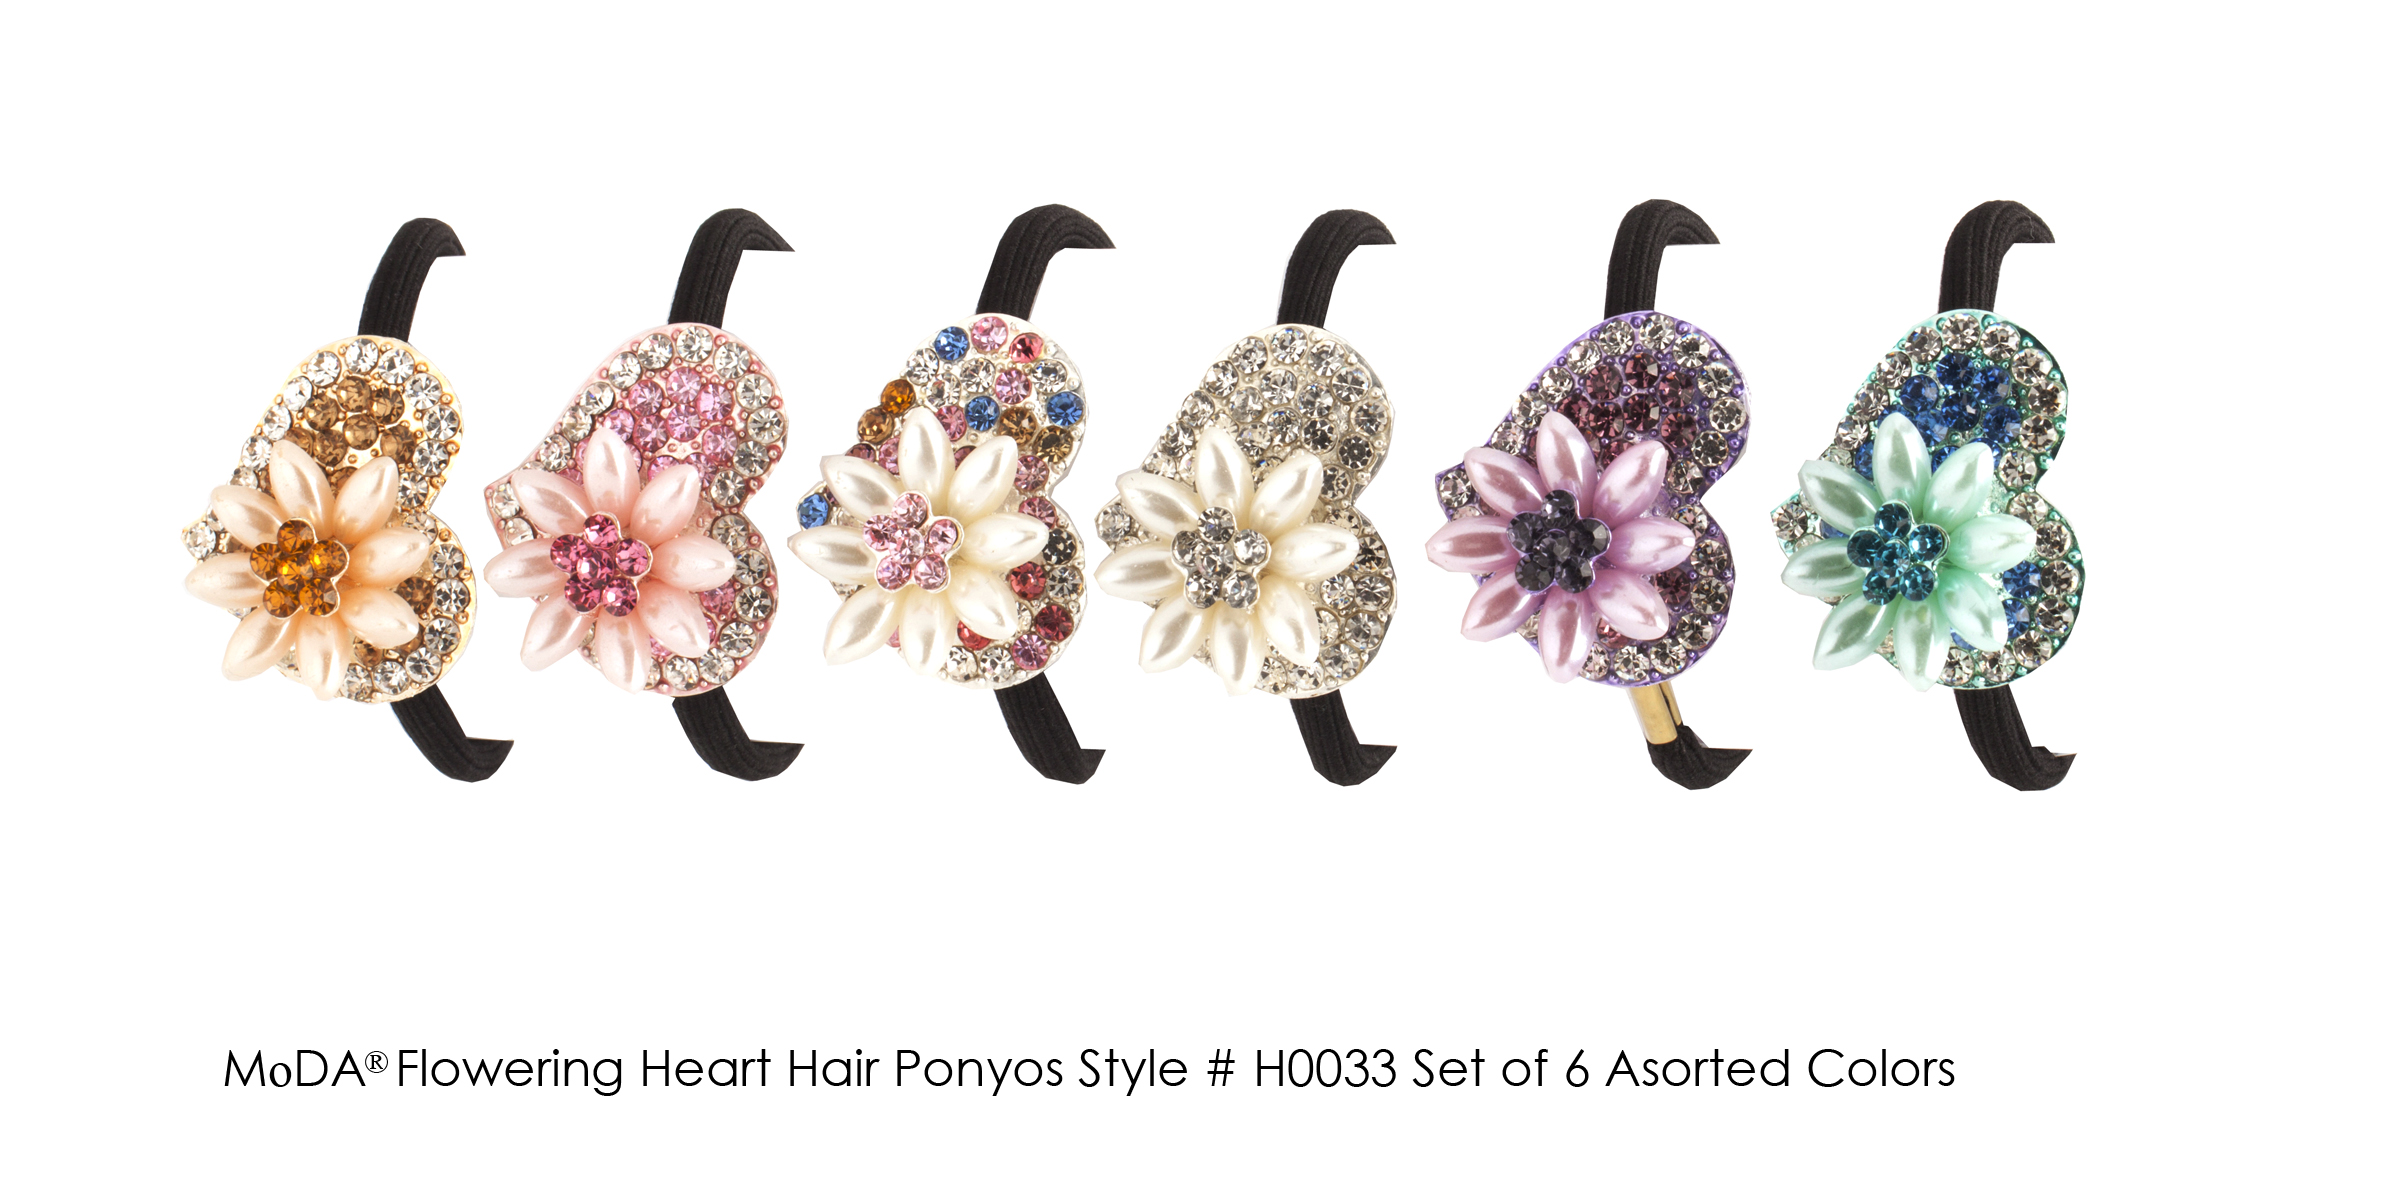 MoDA Hair Ponyo with Flowering Hear Rhinestone Gem Set of 6 Assorted Colors